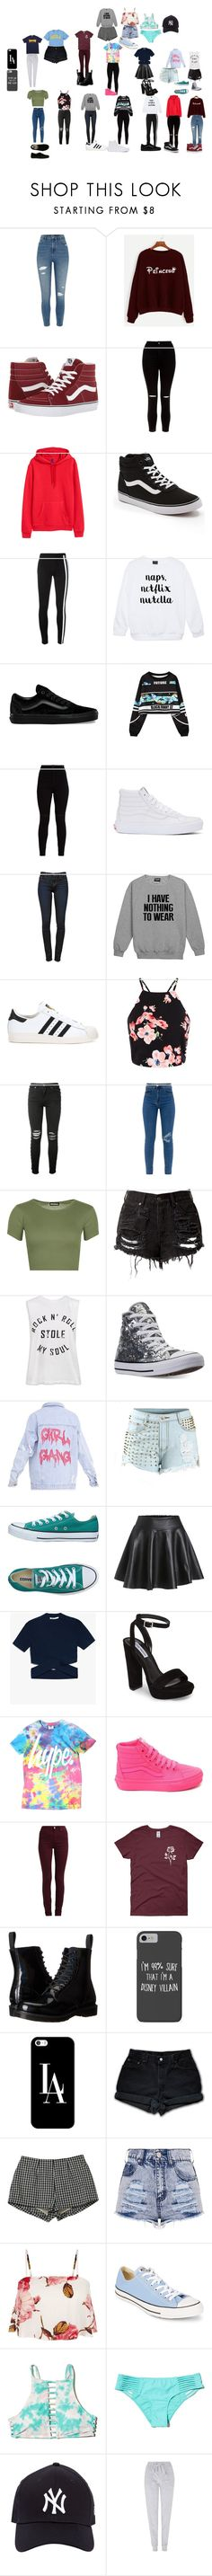 """""""PAKING #1"""" by emmalovesbooks2 ❤ liked on Polyvore featuring River Island, Vans, New Look, H&M, Y-3, WithChic, J Brand, adidas, AMIRI and WearAll"""